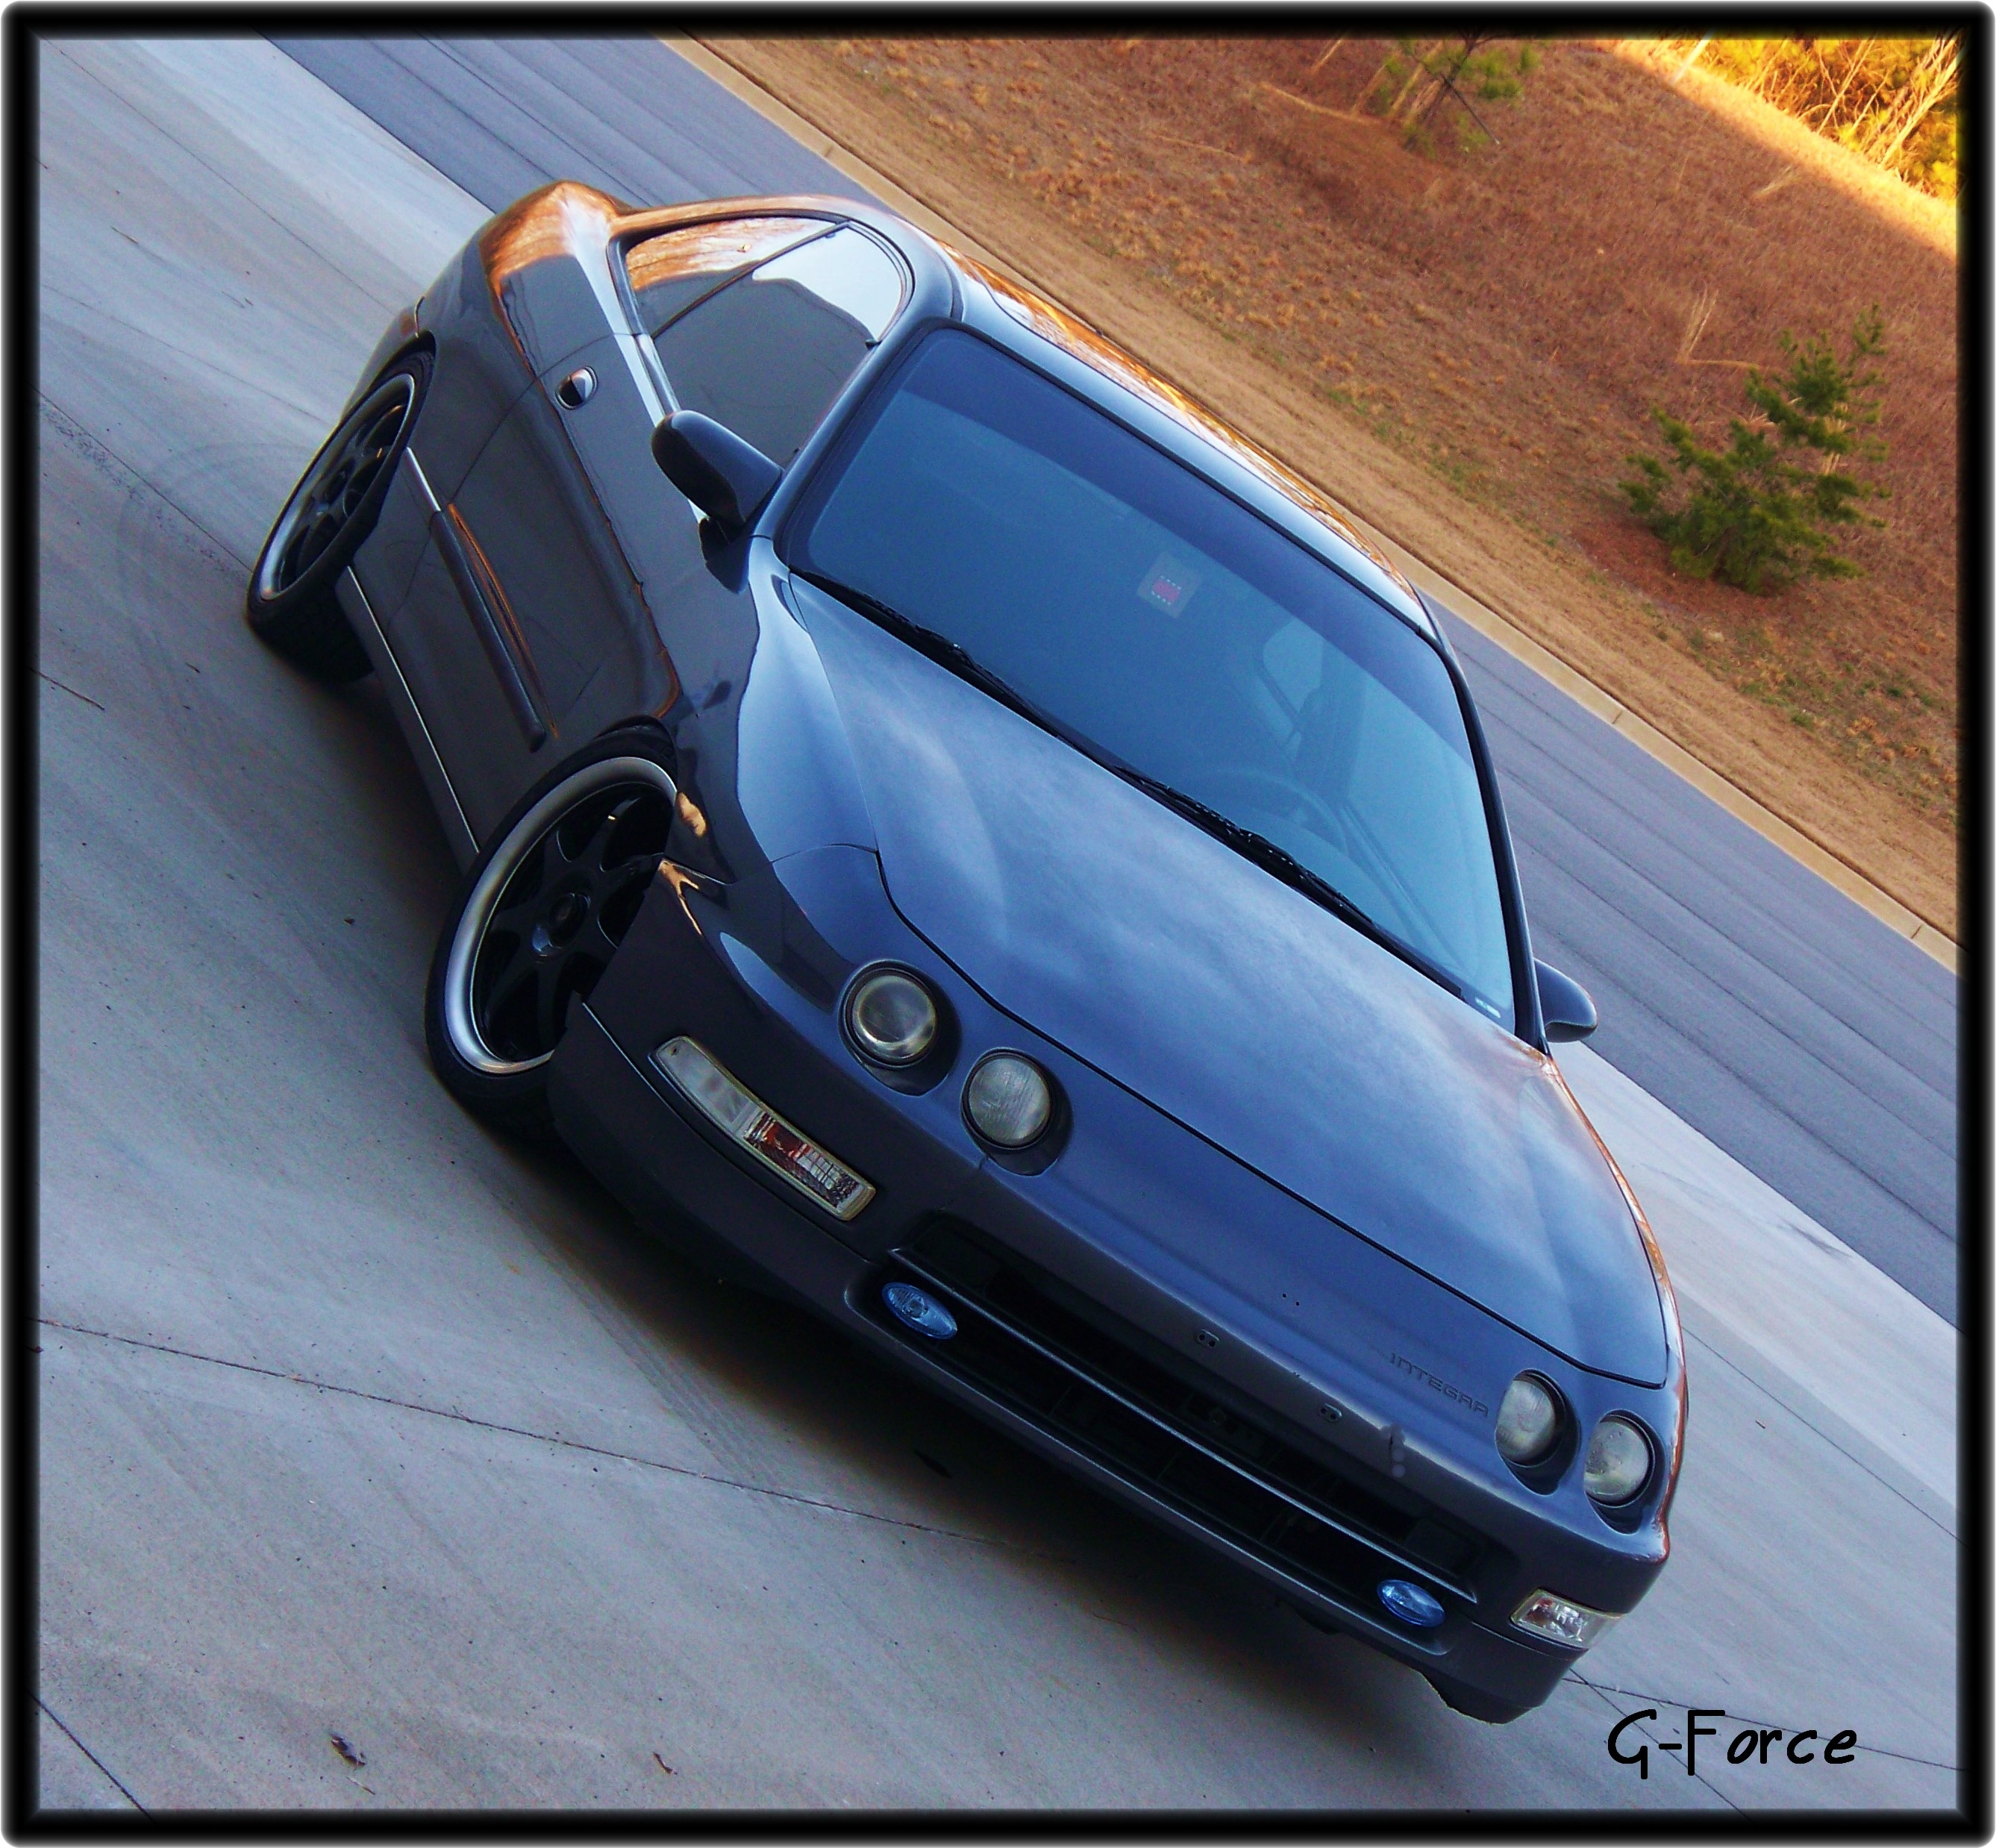 Gaforce71 1994 Acura Integra Specs, Photos, Modification